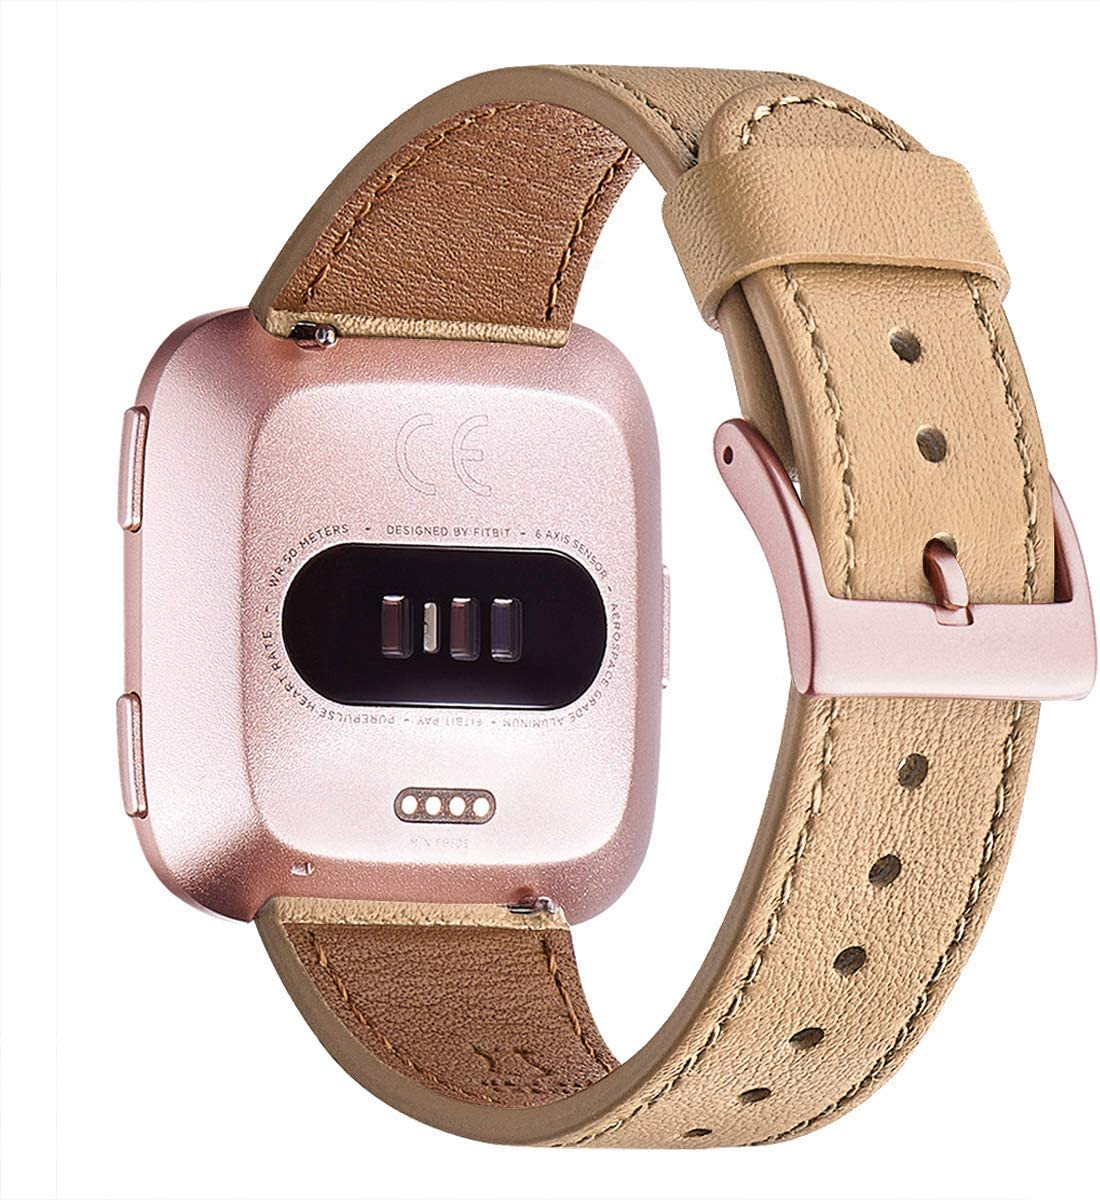 WFEAGL For Versa Band, Top Grain Leather Band Replacement Strap for Versa /Versa 2 /Versa Lite /Versa SE Fitness Smart Watch(Camel Band+Rose Gold Buckle)